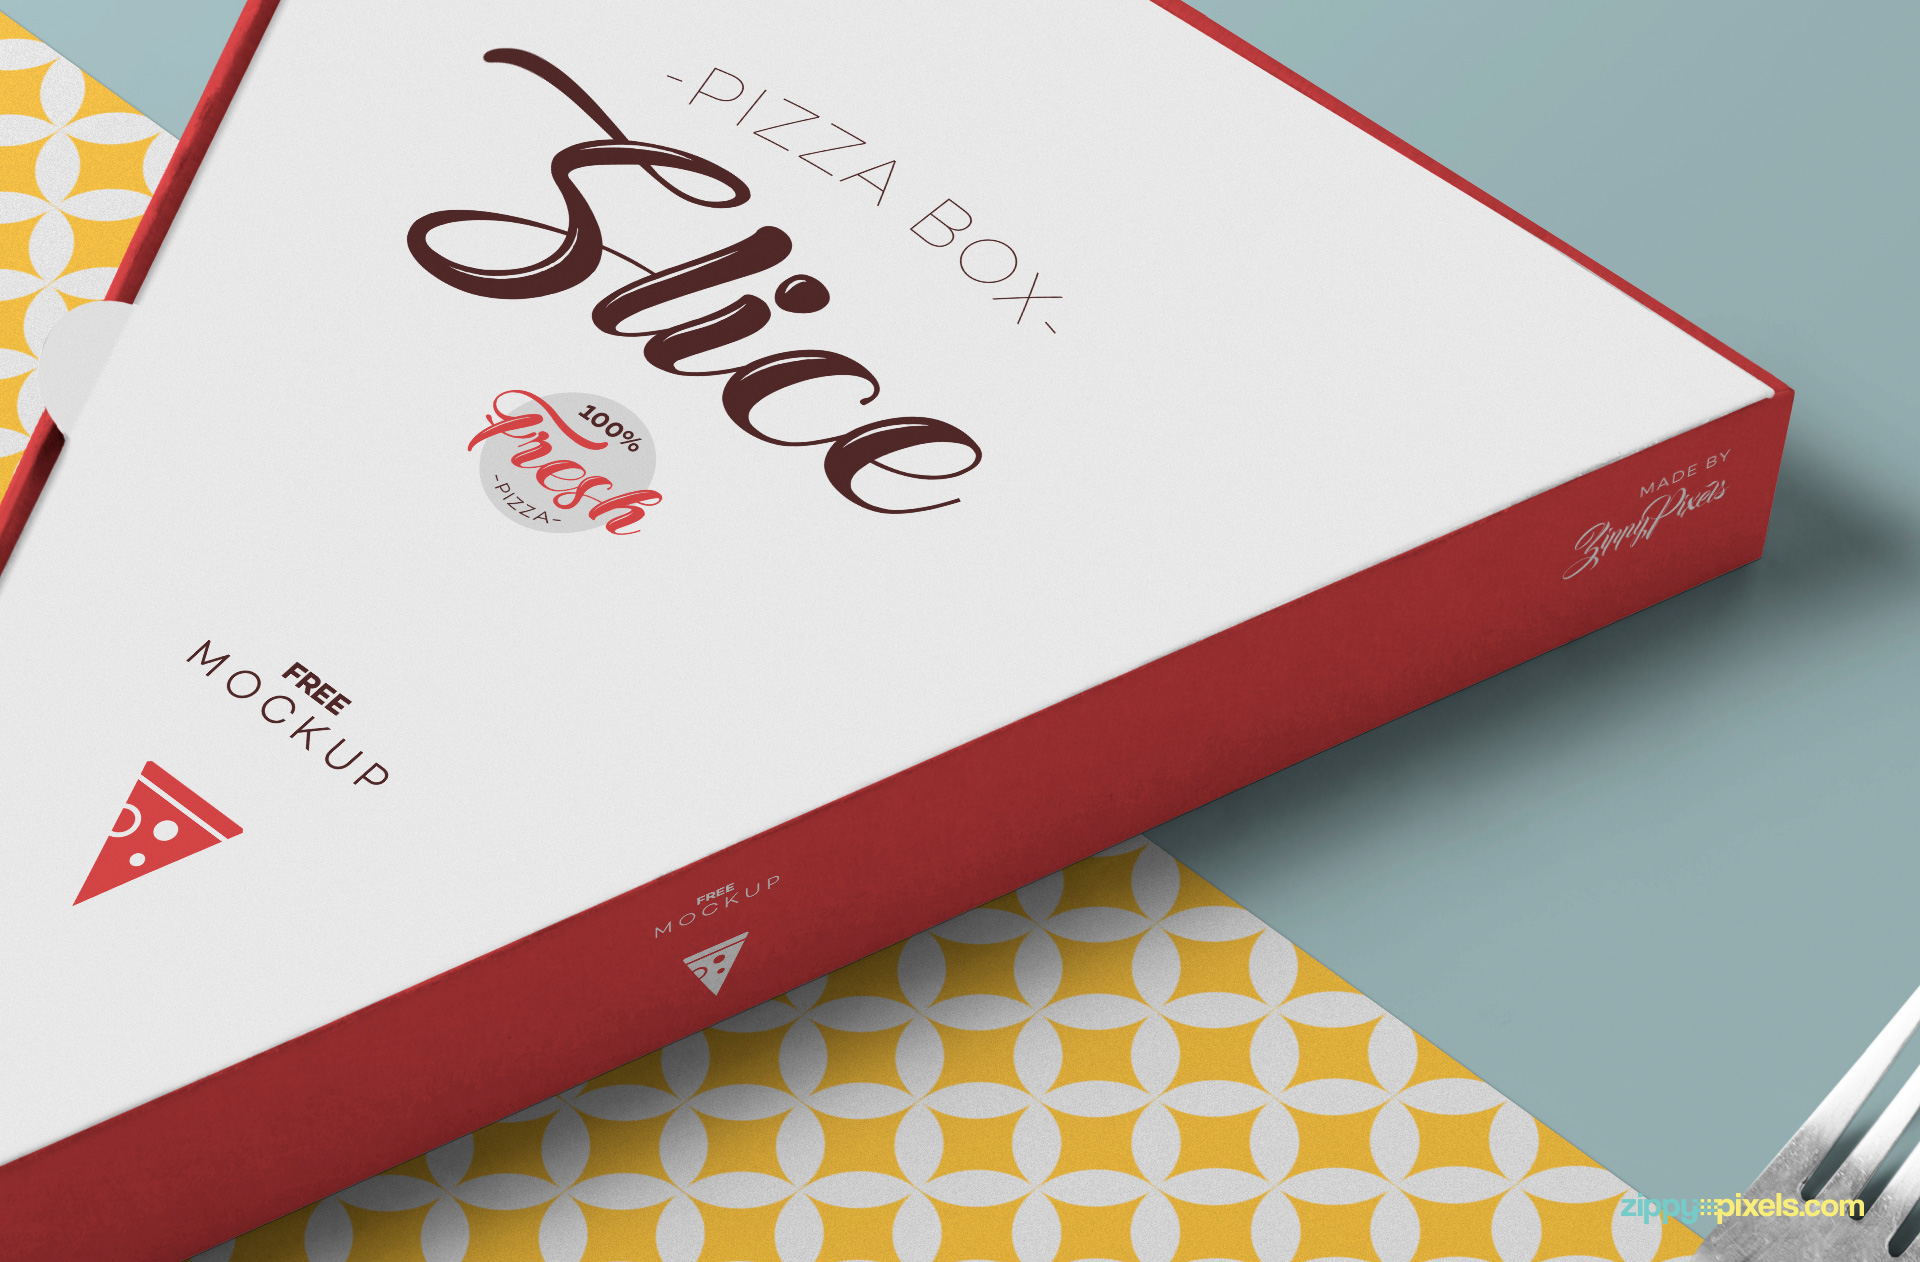 Top and side design of pizza slice box mockup have separate smart object option.